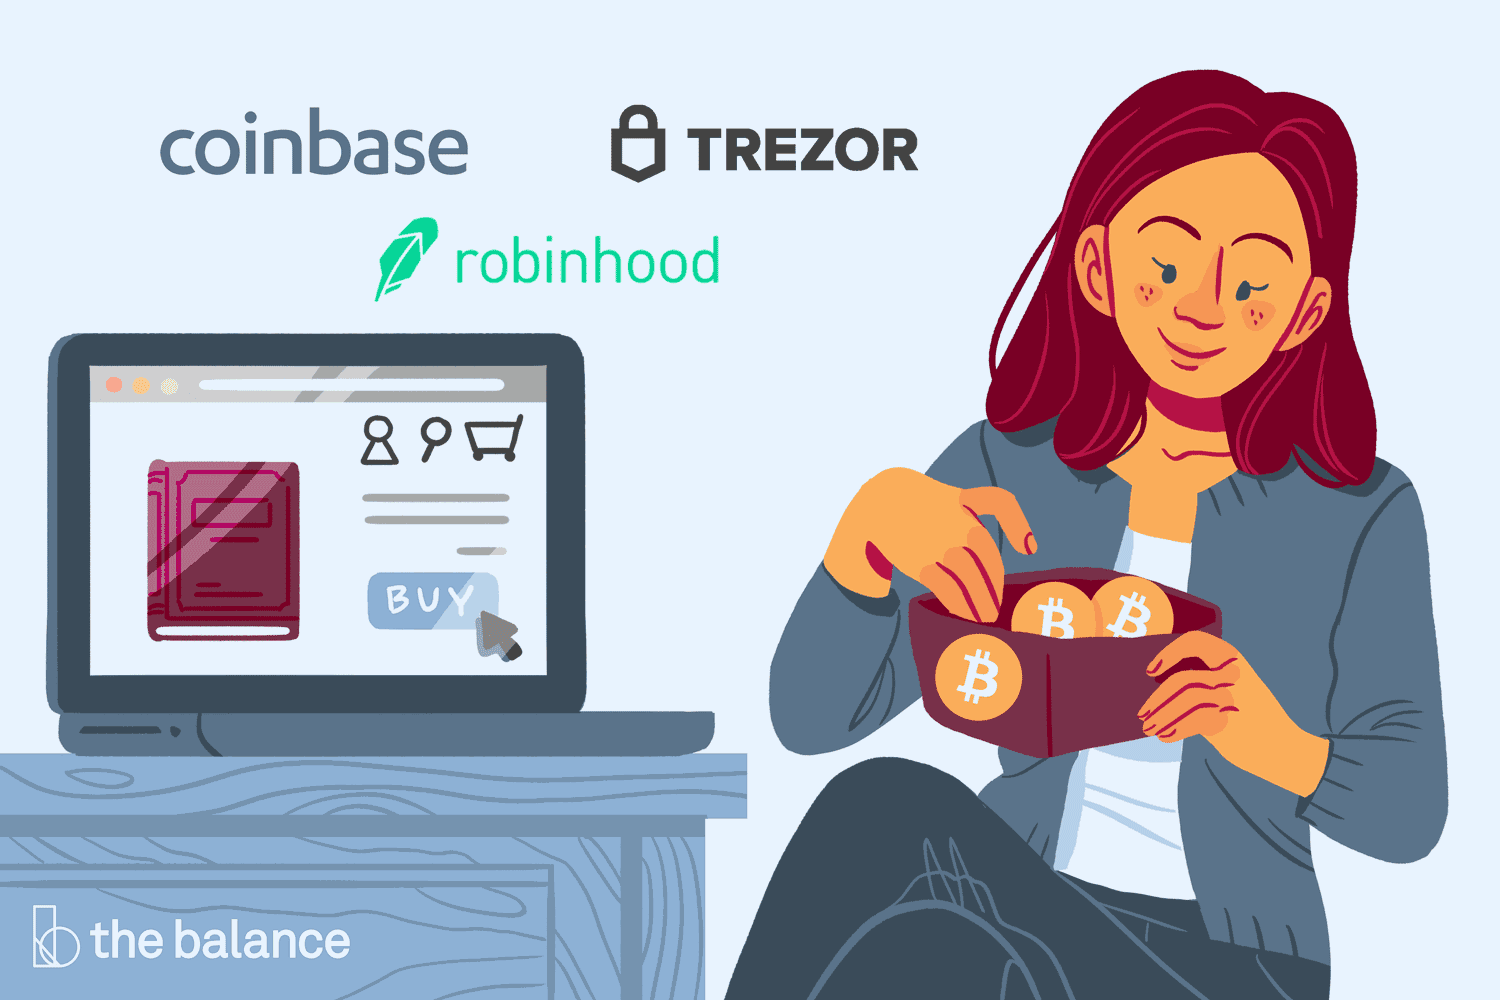 how to convert one cryptocurrency to another on coinbase